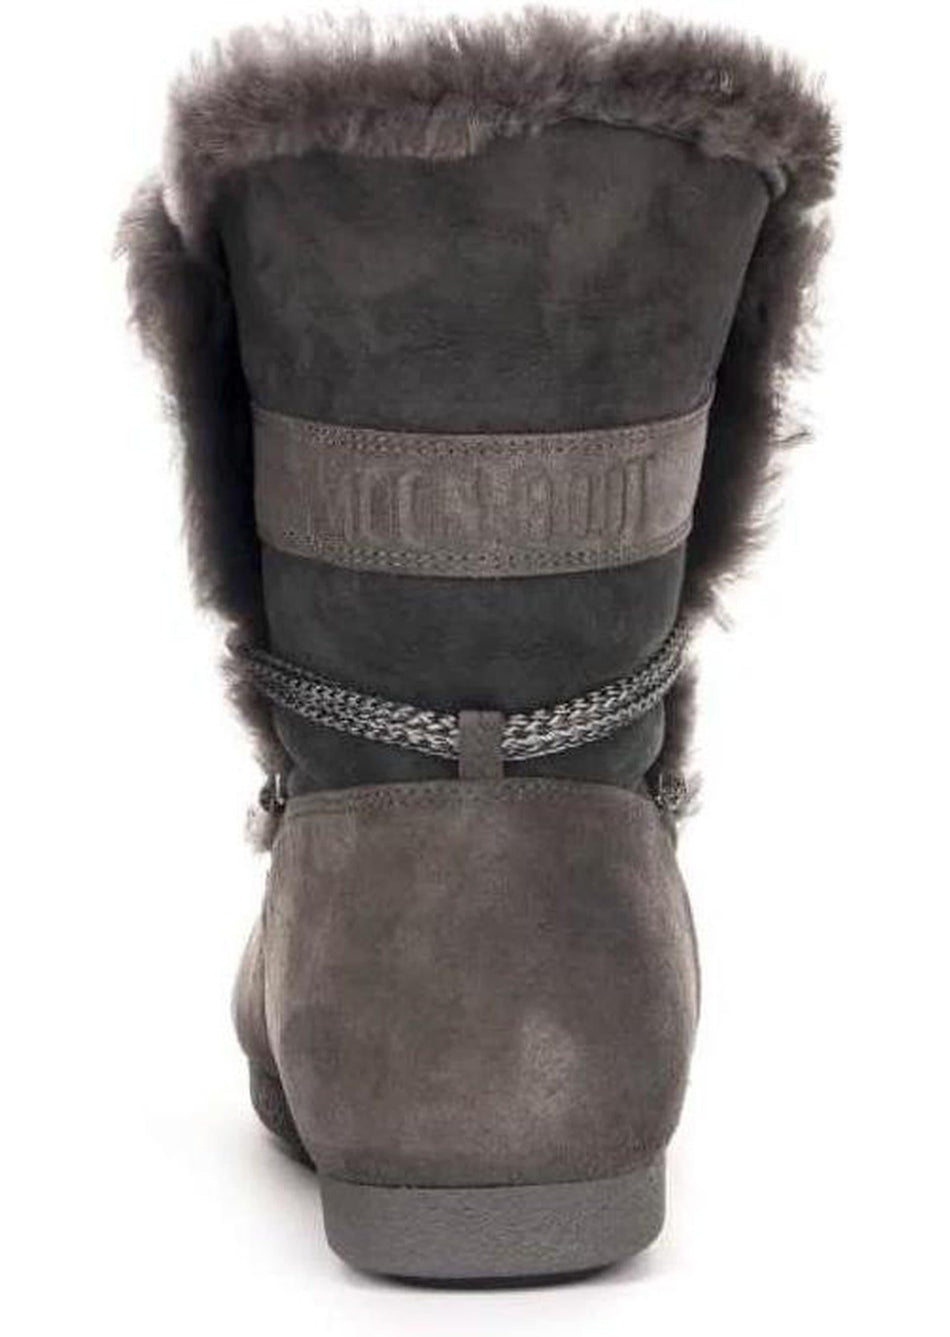 moon boot moonboot far side high sh MOON BOOT - Vittorio Citro Boutique